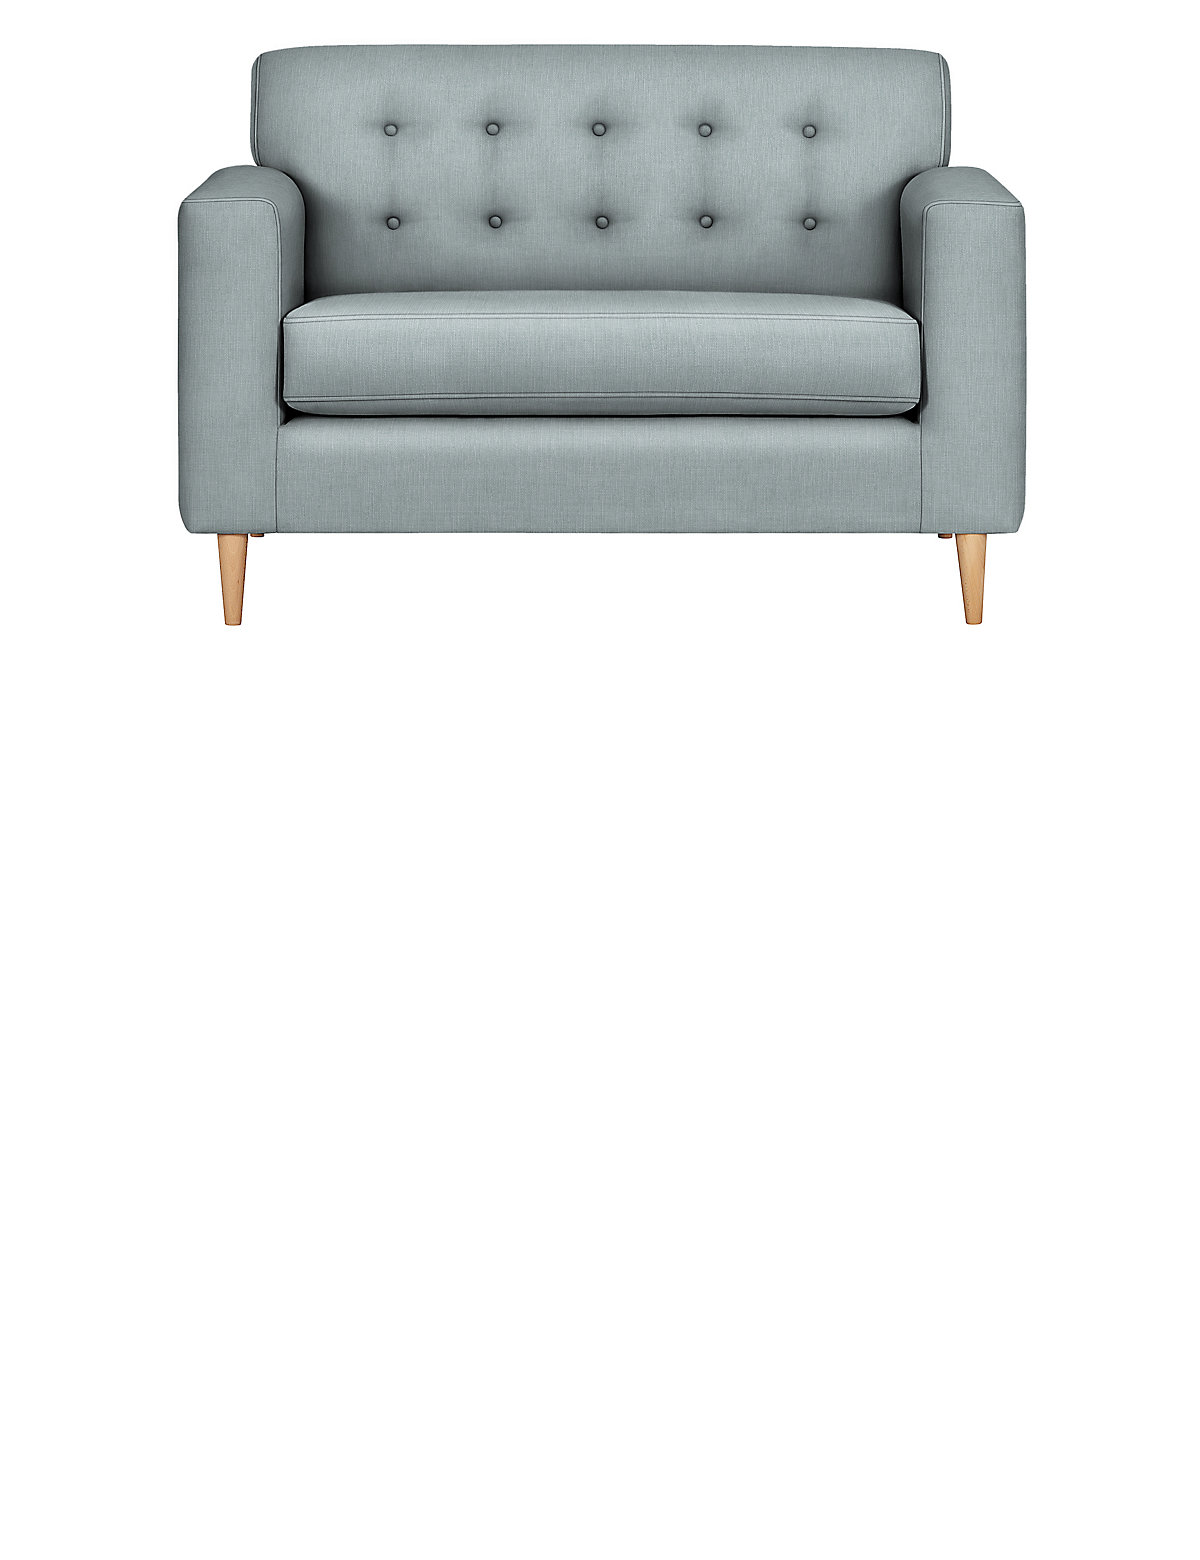 Staten Loveseat